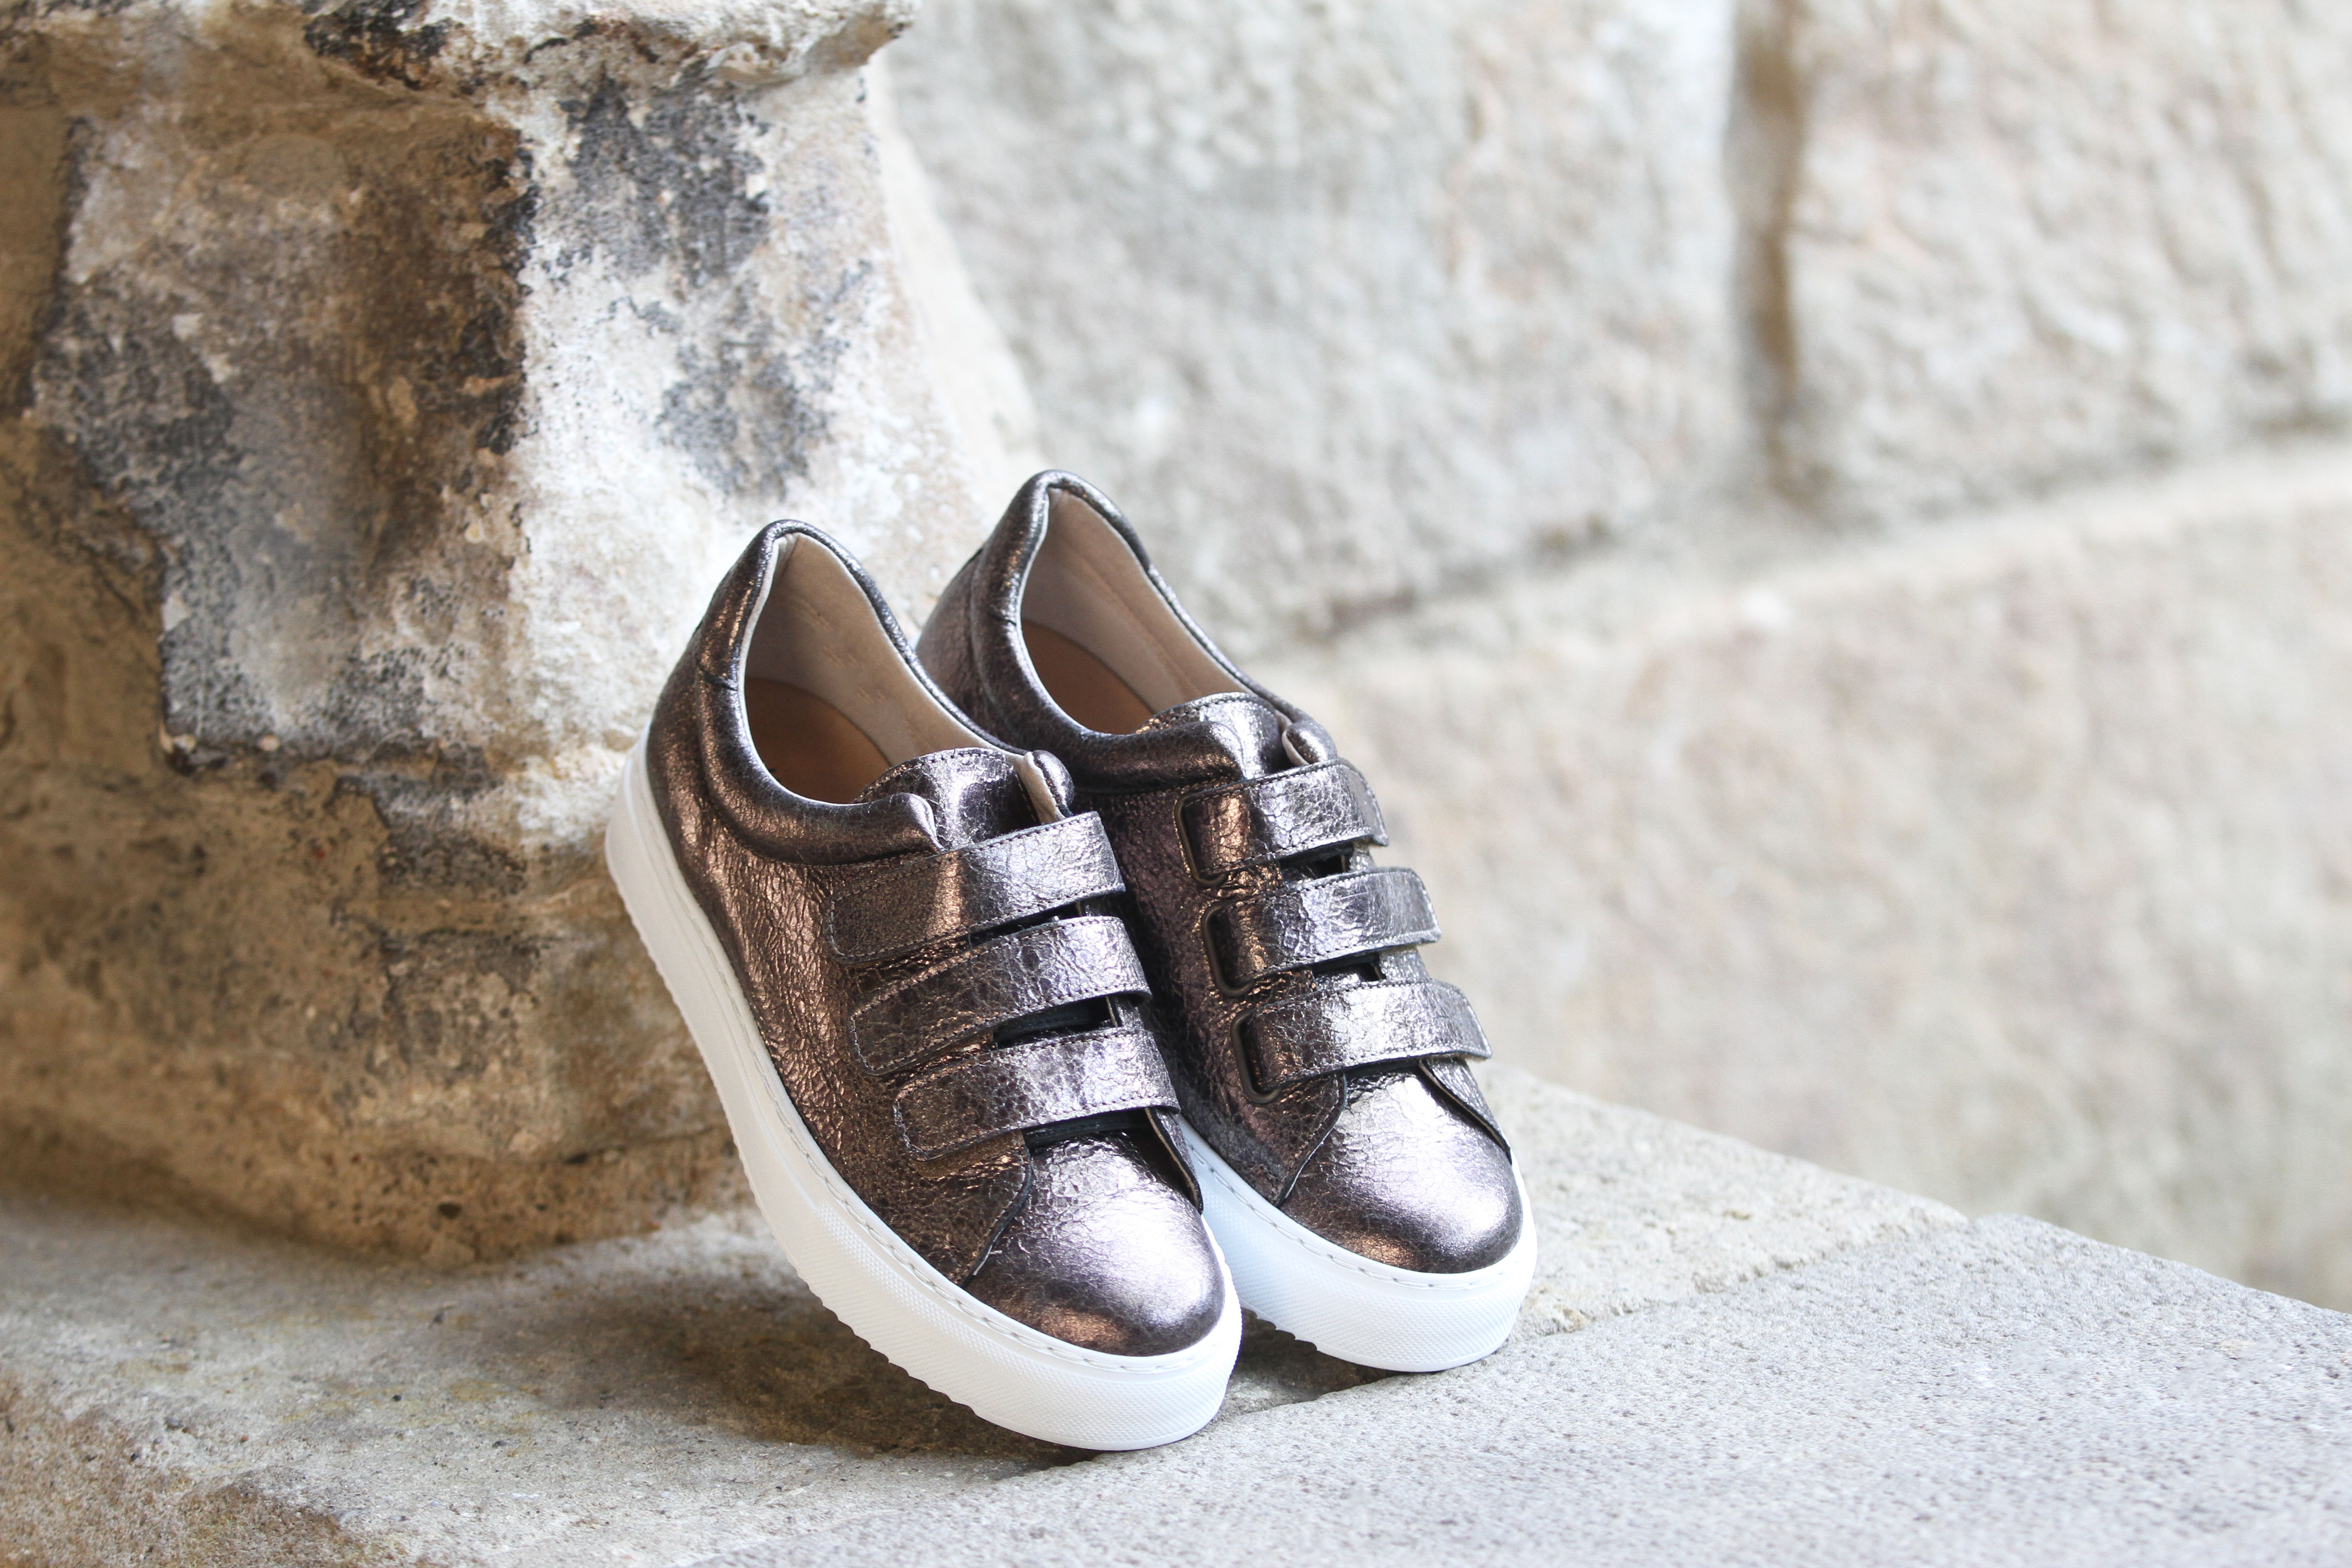 Jules & Jenn les collections chaussures femme sneakers velcro